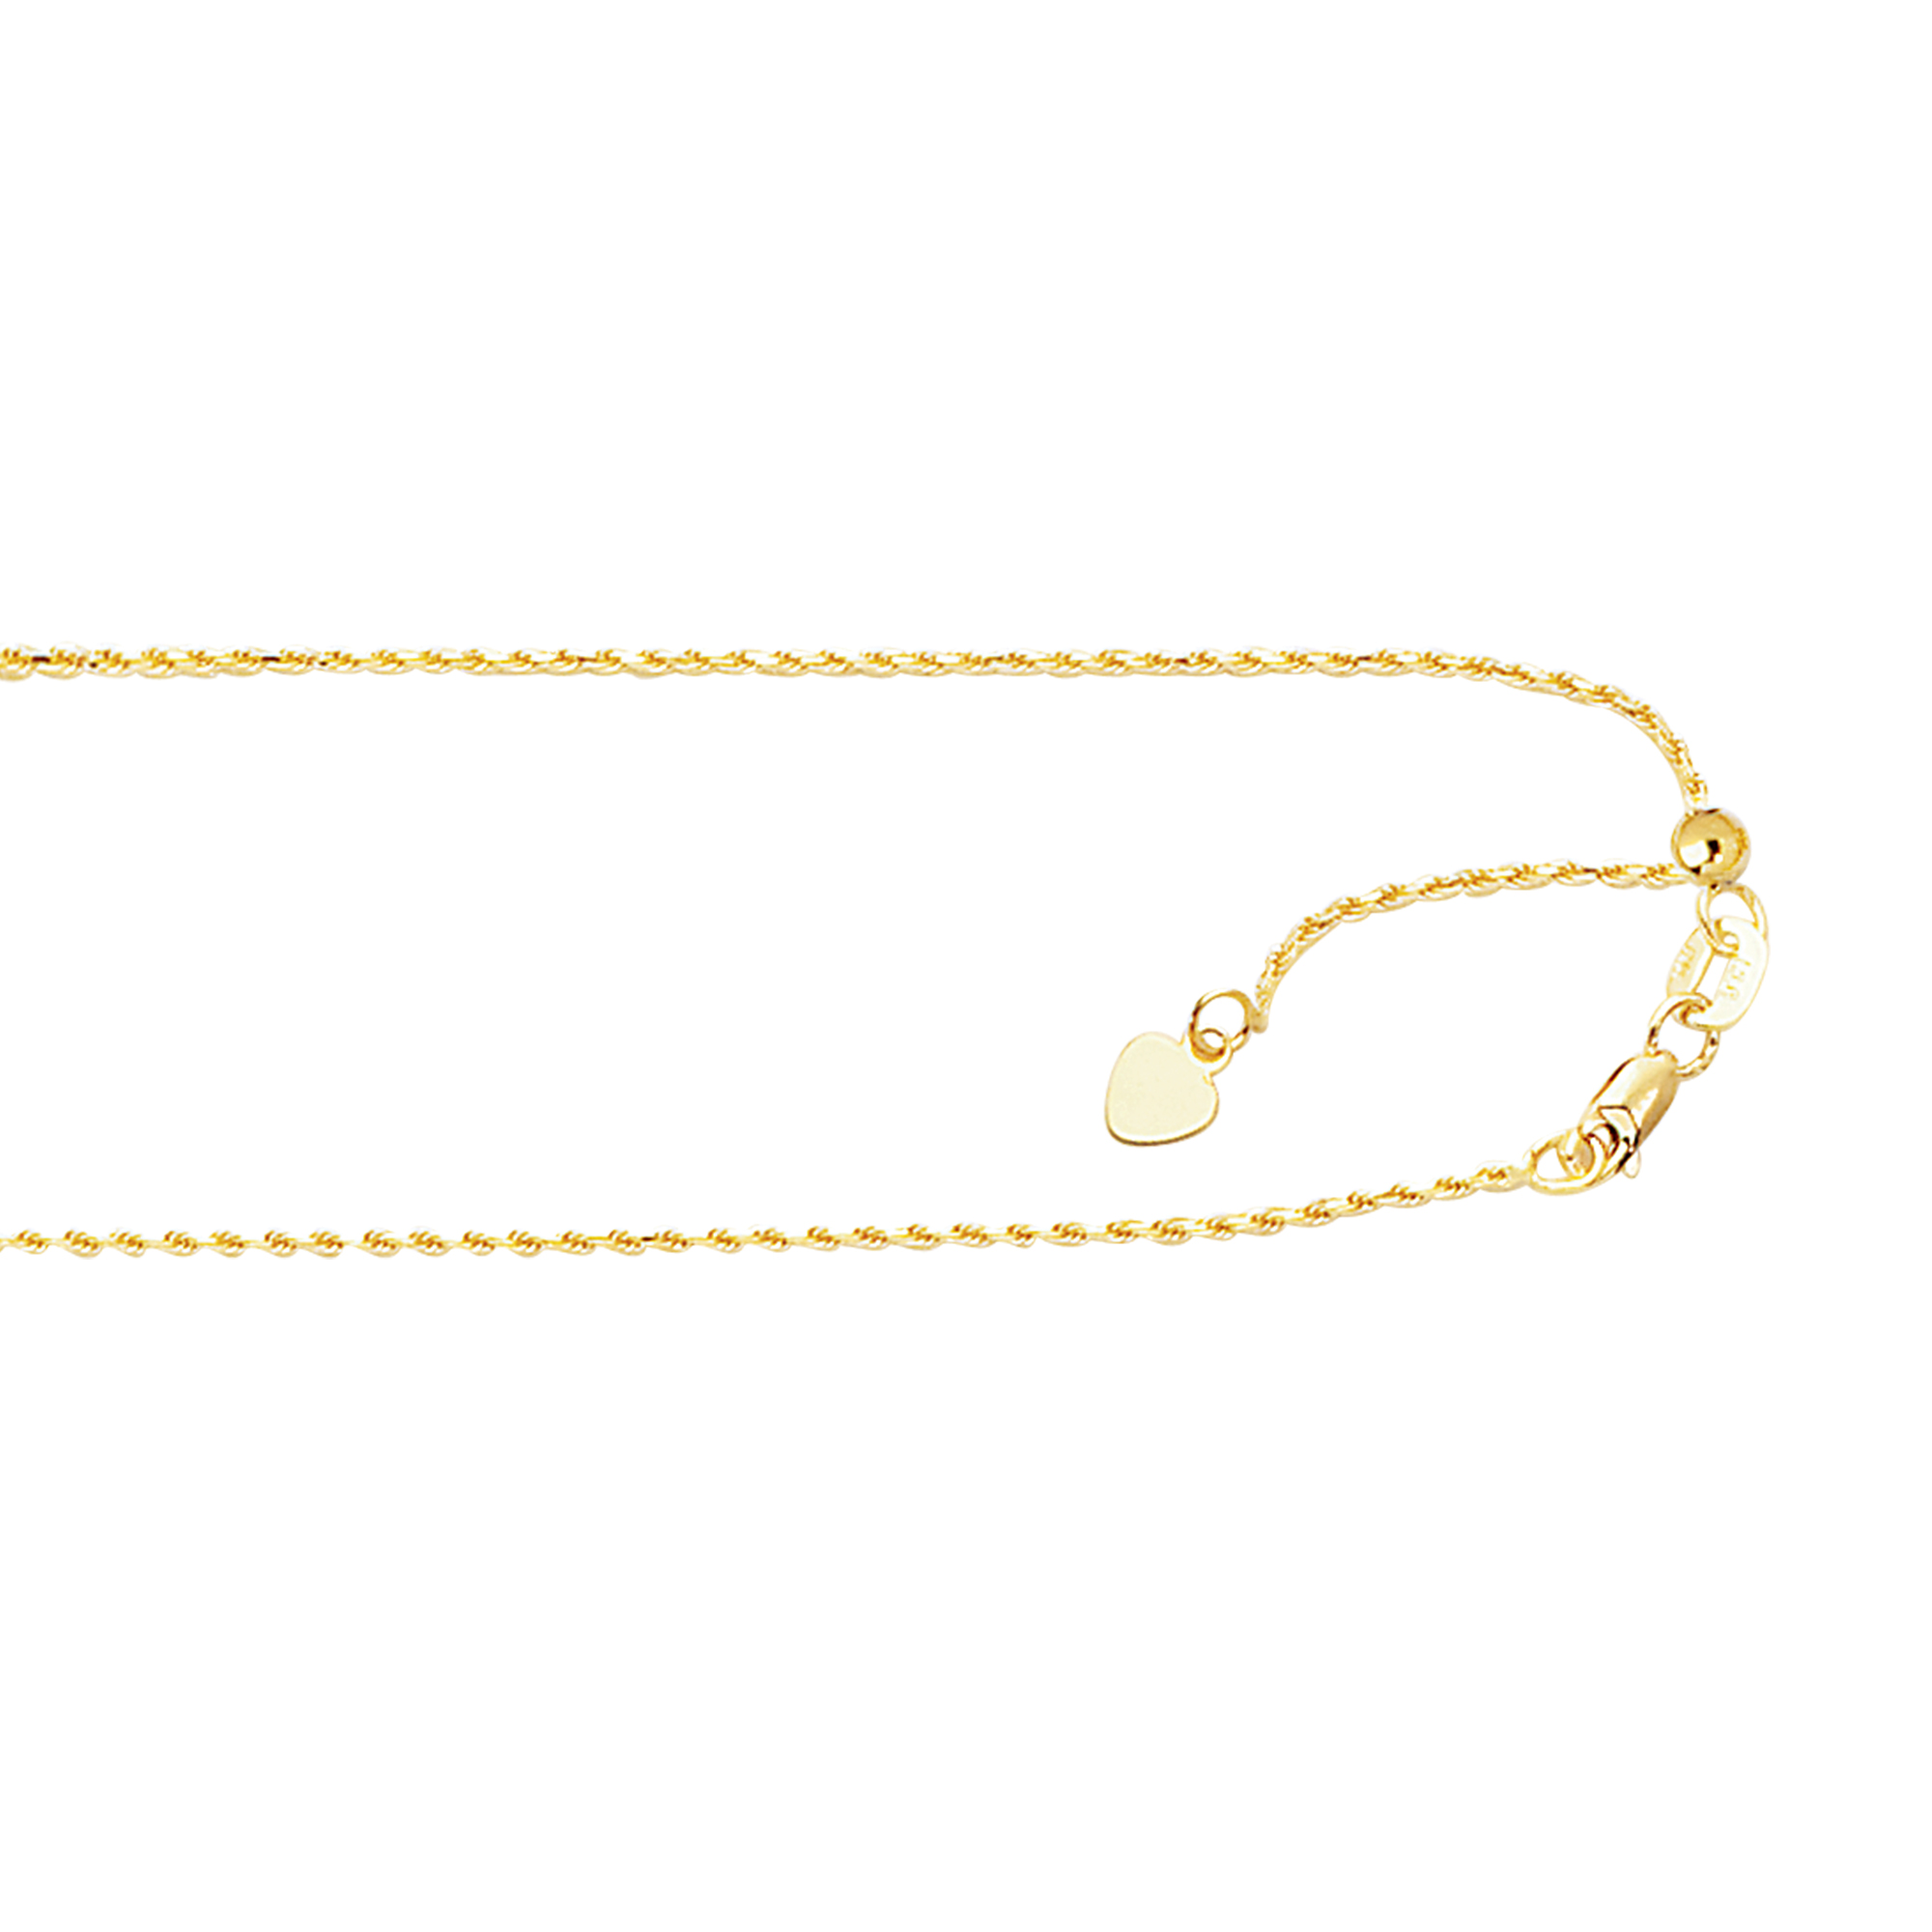 LUXURMAN Solid 10k Gold Rope Chain For Women Adjustable 1mm Wide